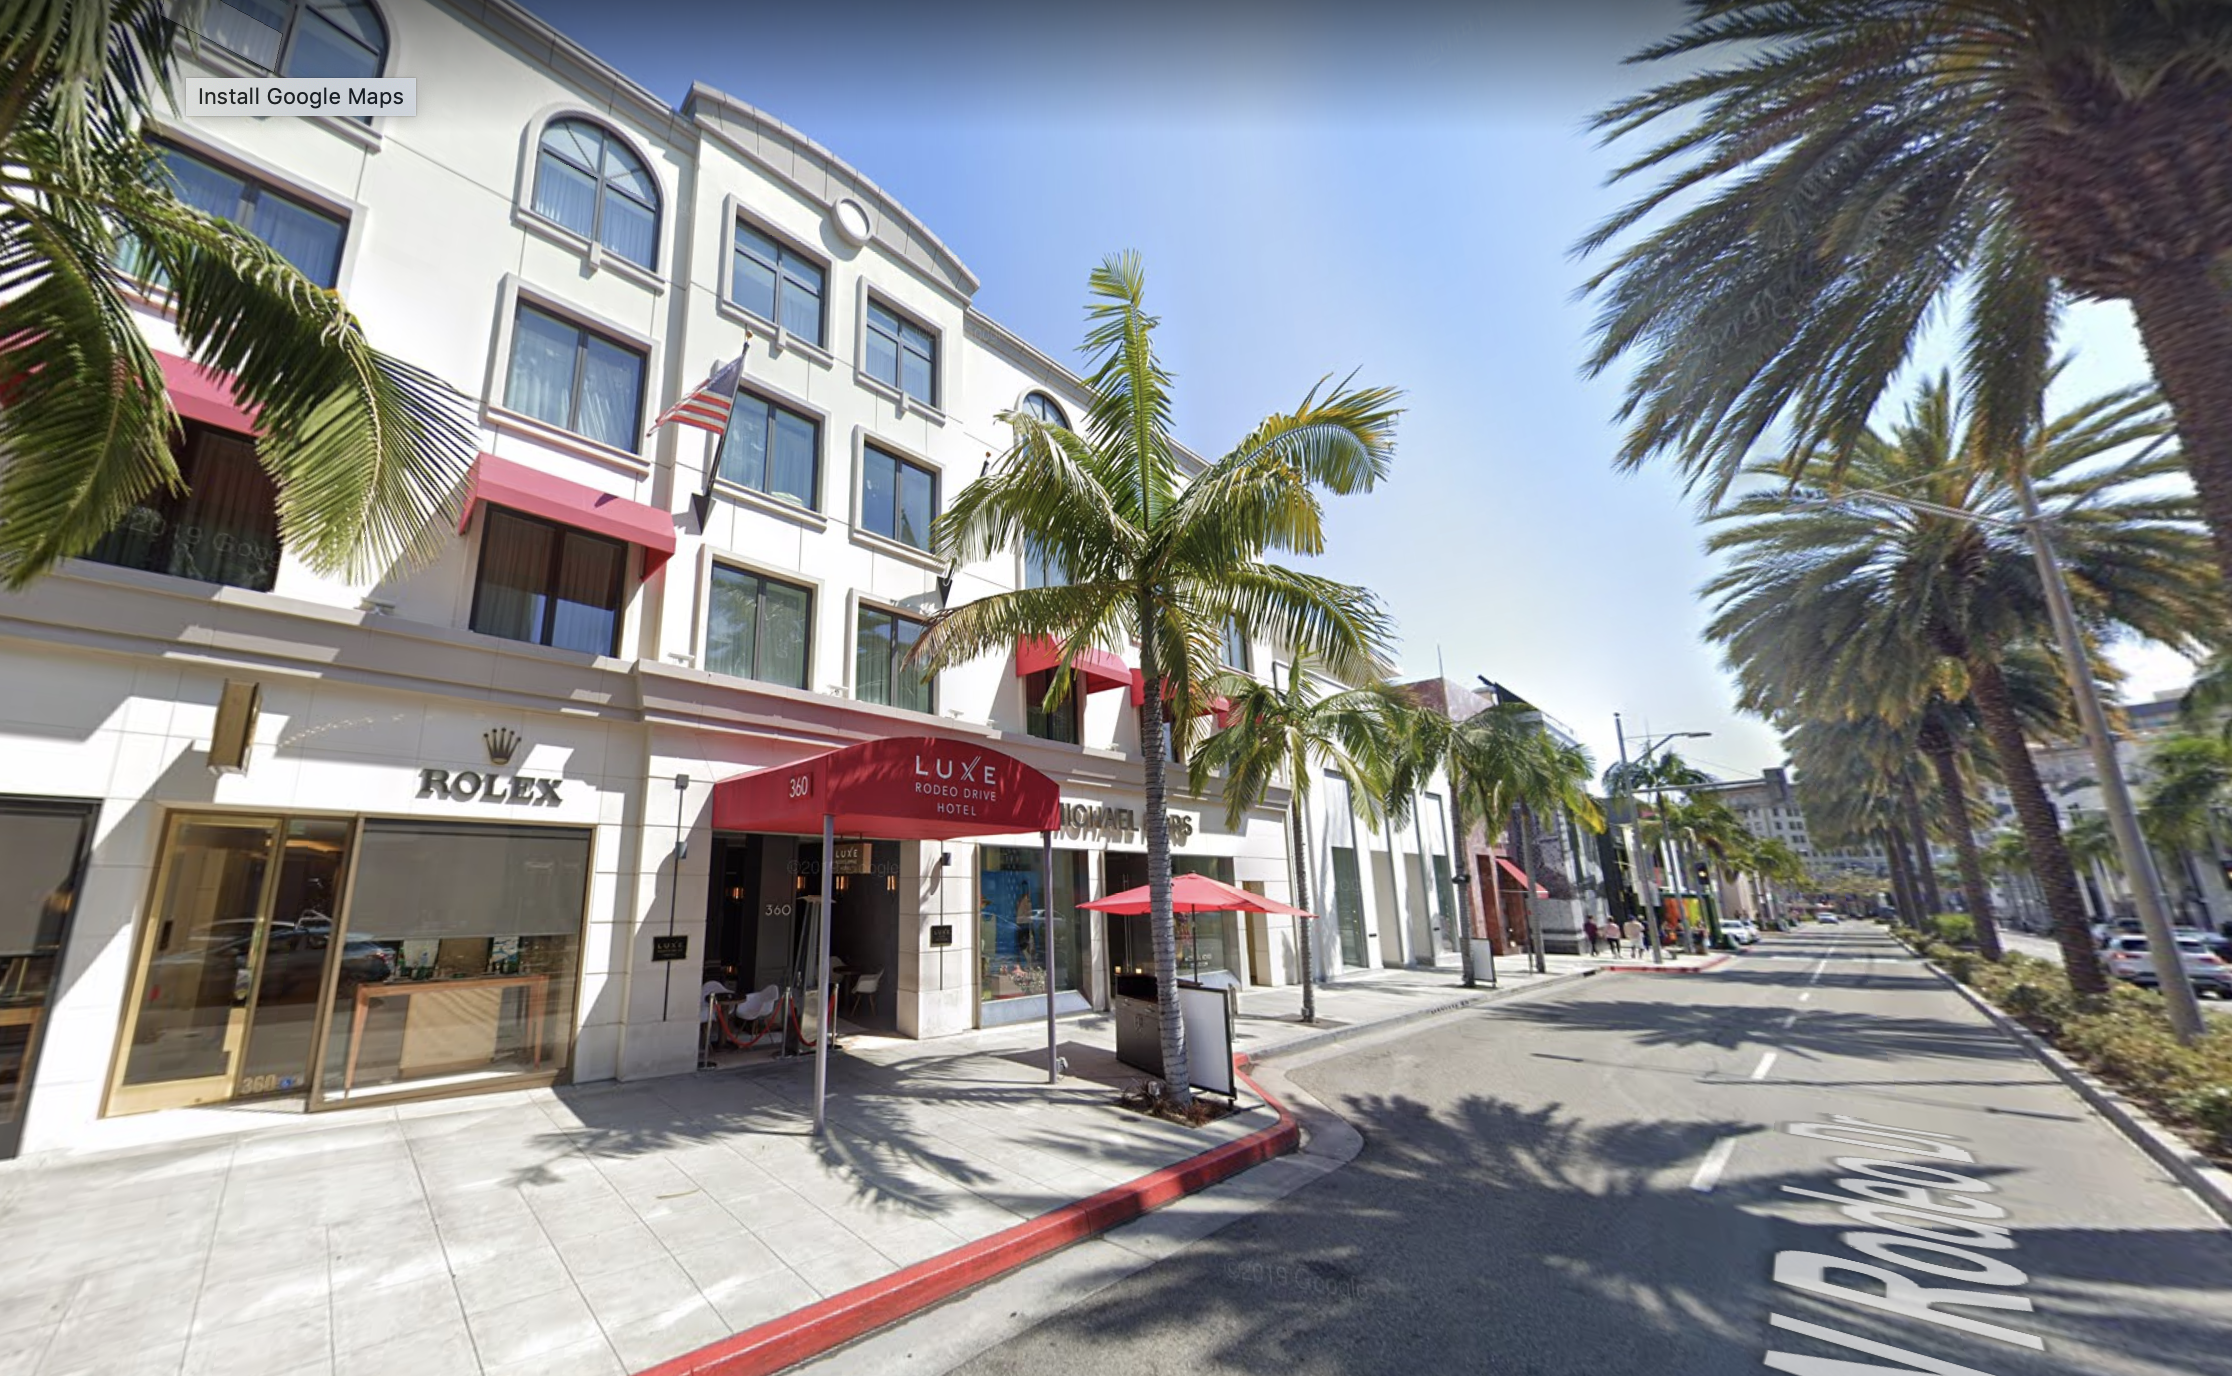 The Luxe Rodeo Drive hotel in Beverly Hills, Calif. appears in an undated image. (Google Maps)